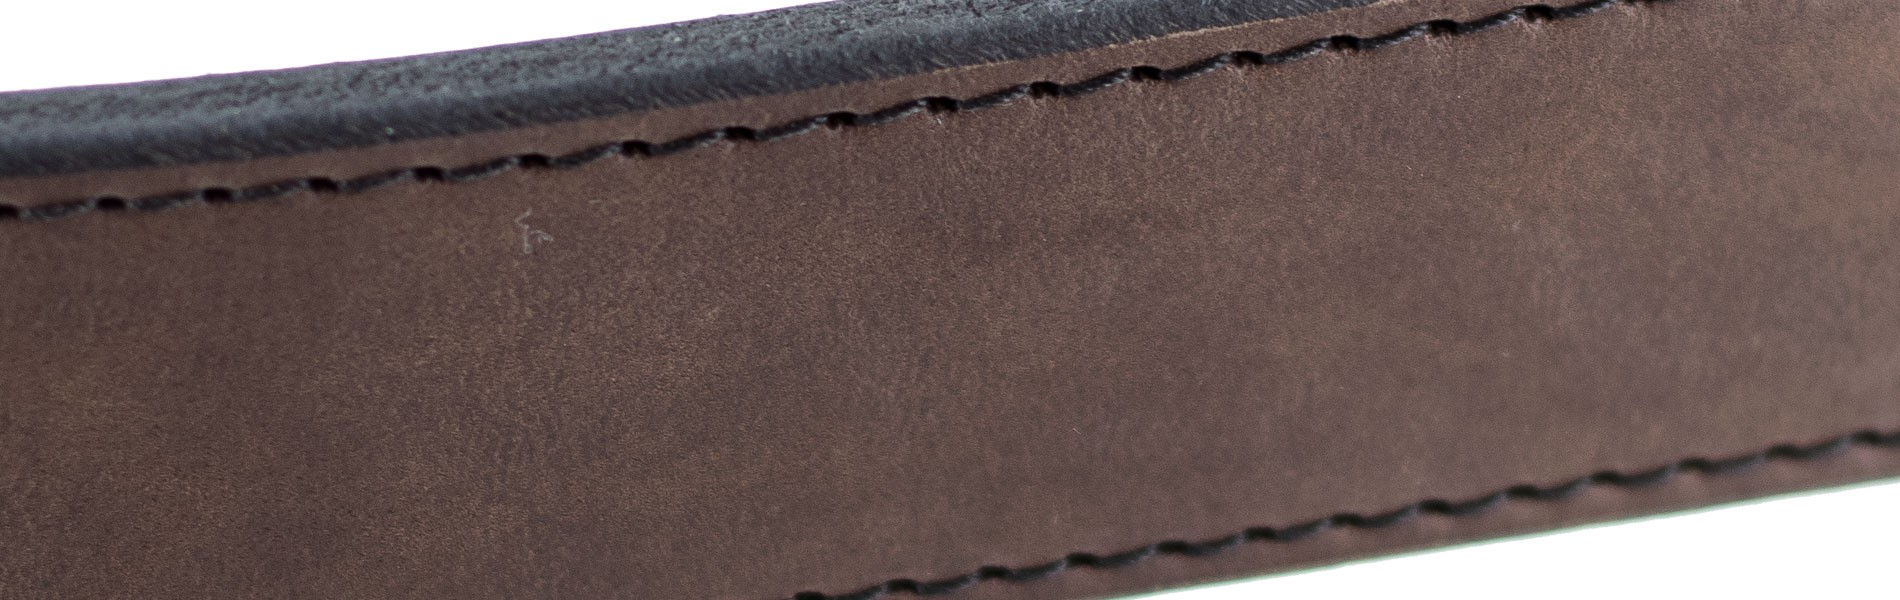 Hanks Extreme Gun Belt Stitching Detail